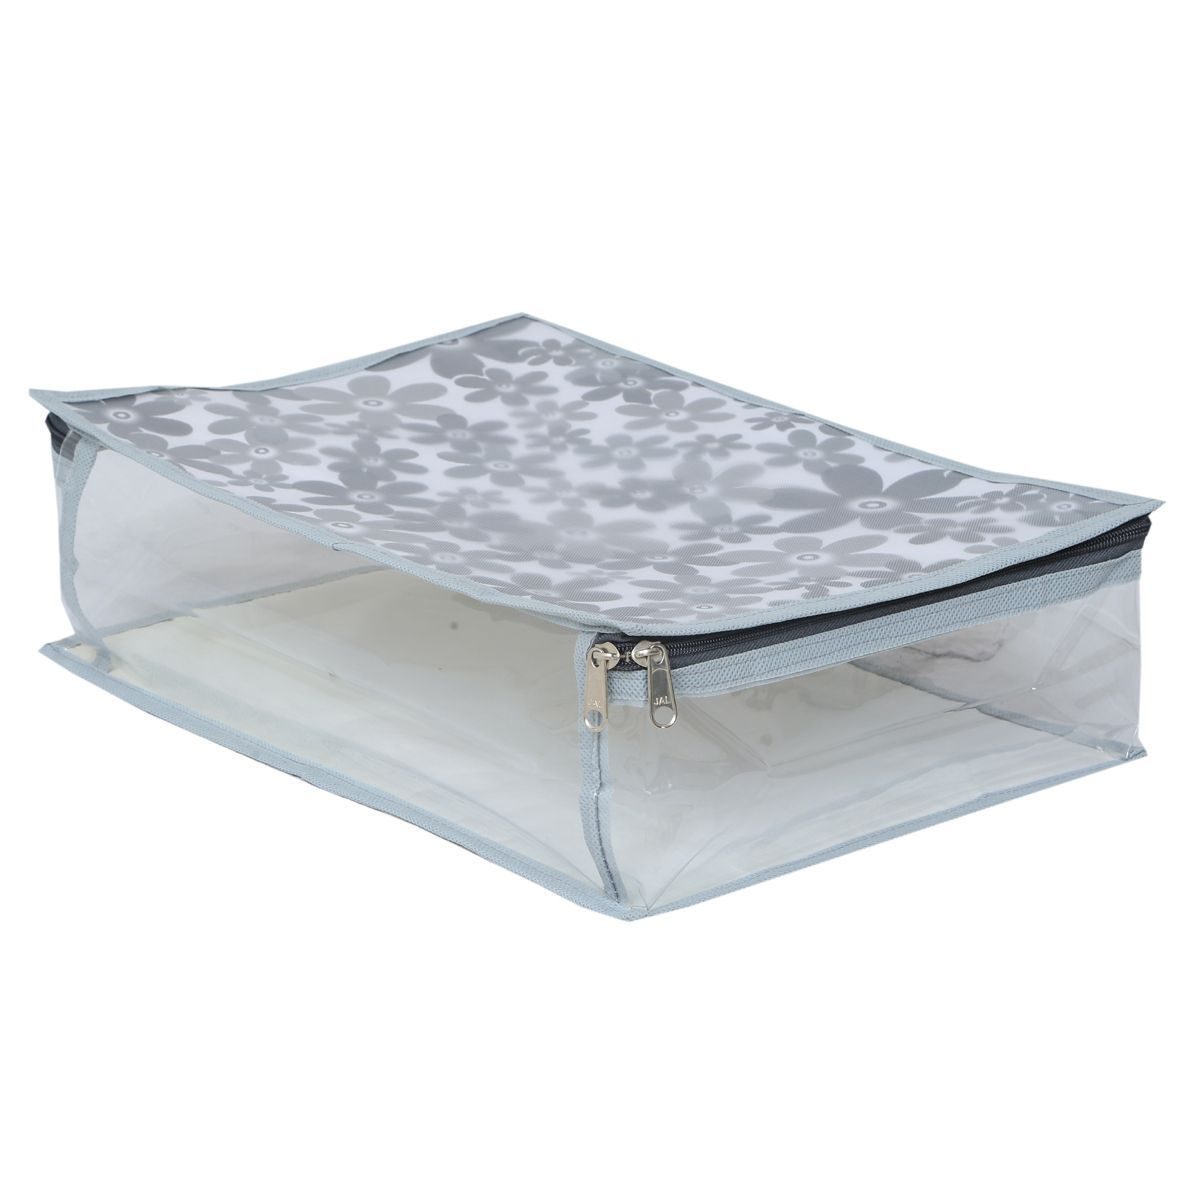 "Kuber Industriesâ""¢ Peticot Cover In Double Layer Imported Net Sheet (Exclusive Product) -KI19307"